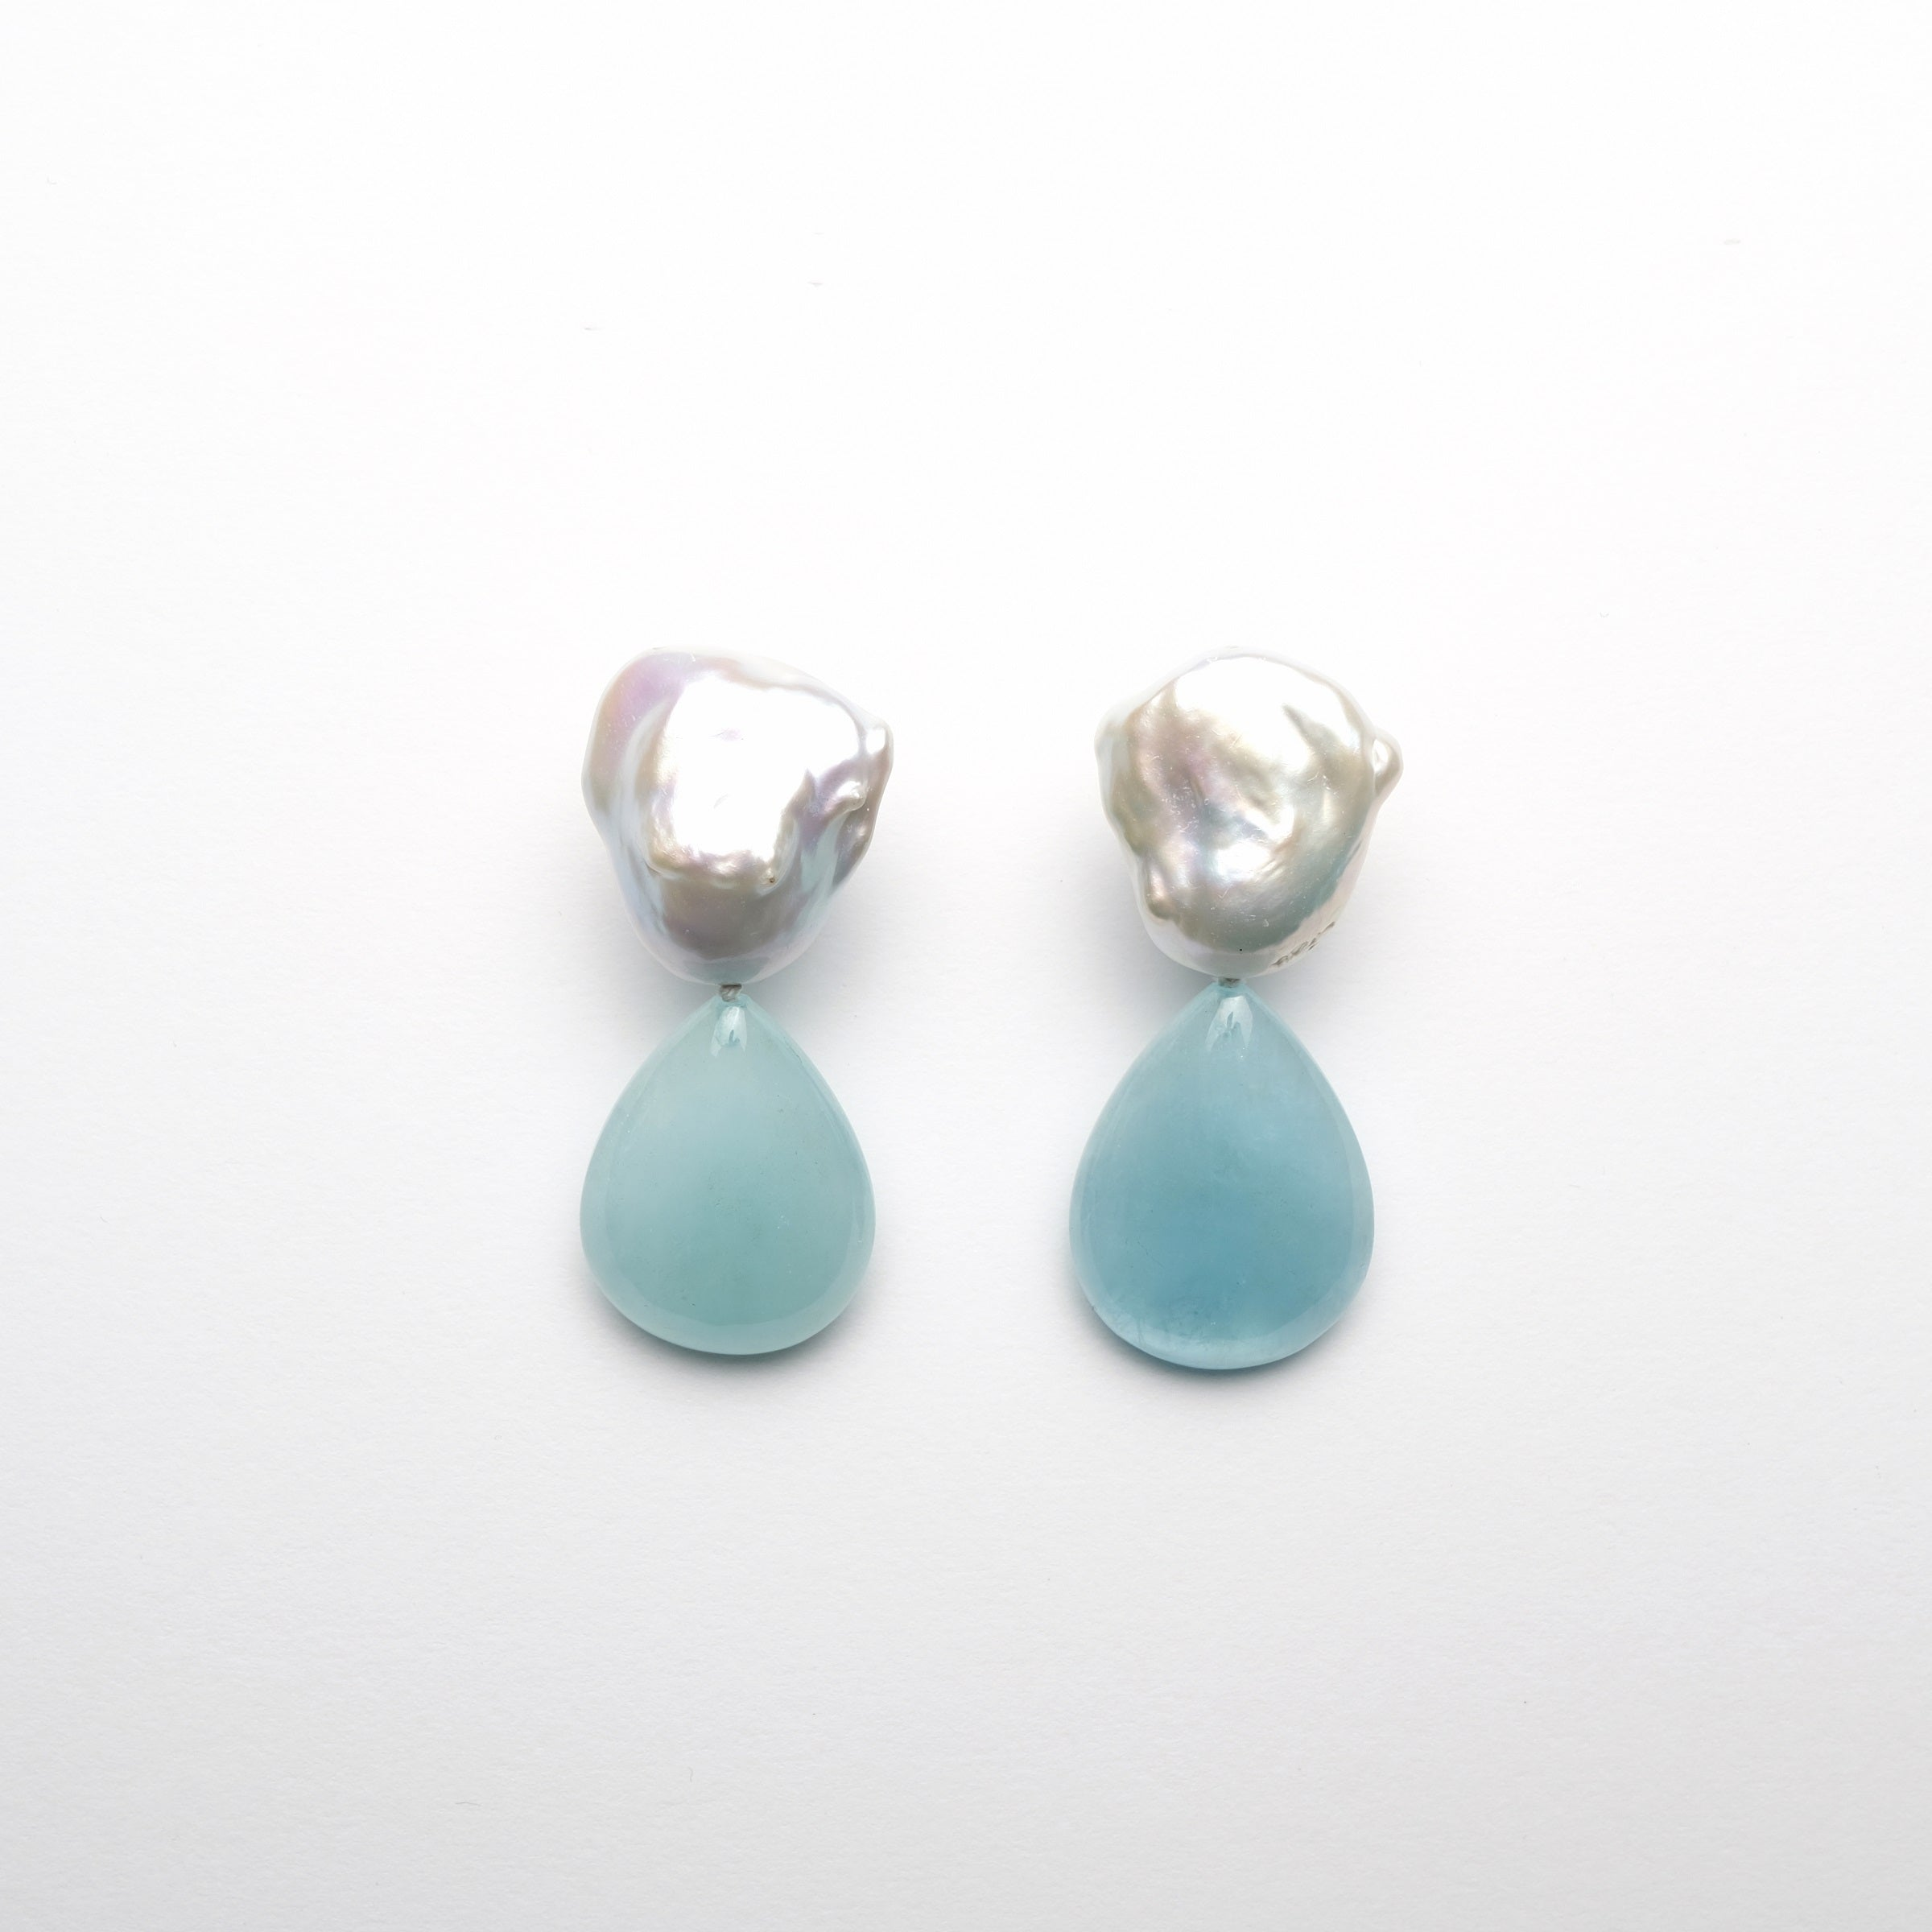 Earclips in baroque pearls and aquamarine